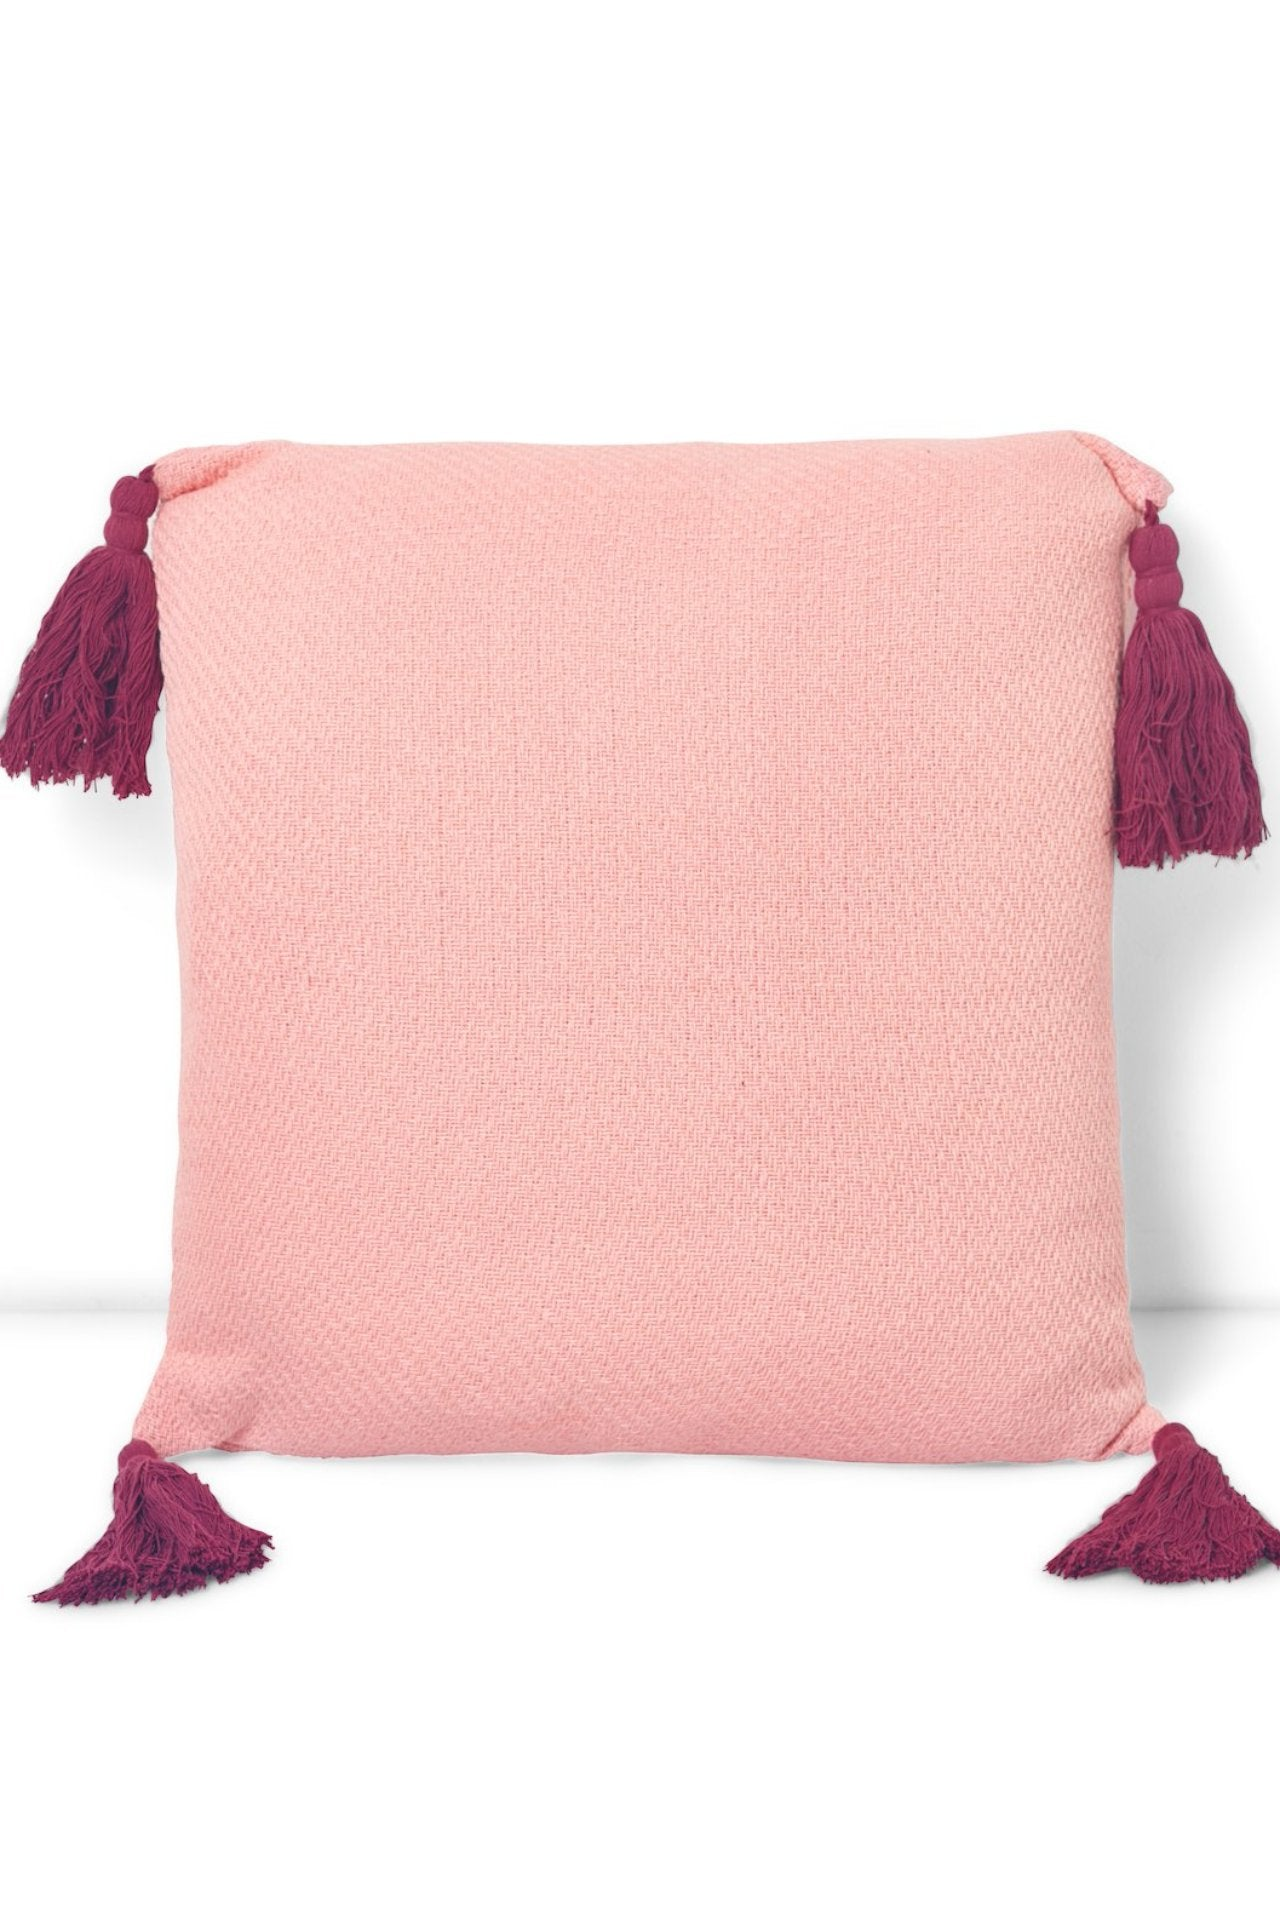 Tassel Corner Square Pillow